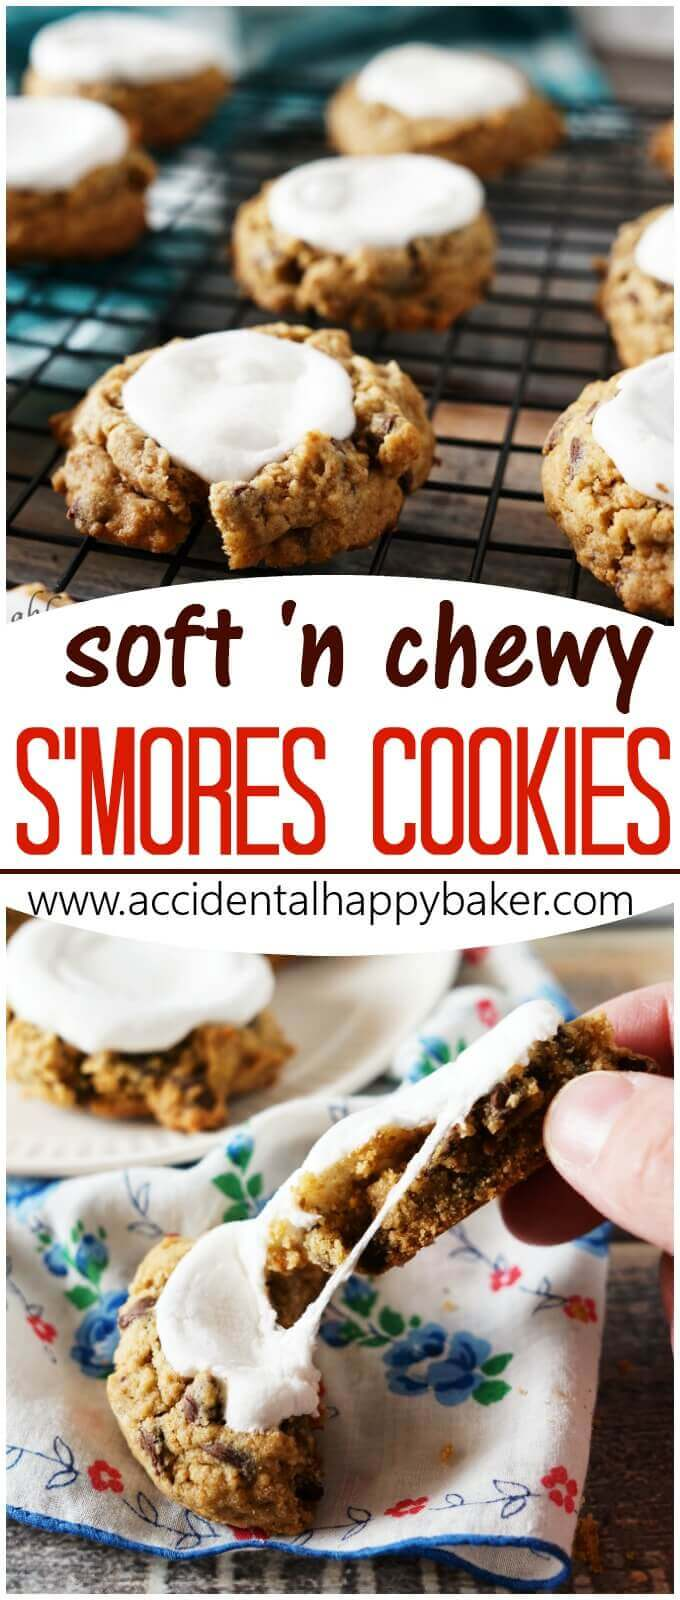 Soft and Chewy Smores Cookies - Loaded with chocolate chips, marshmallows, and graham cracker flavor these are the best smores you'll ever eat!